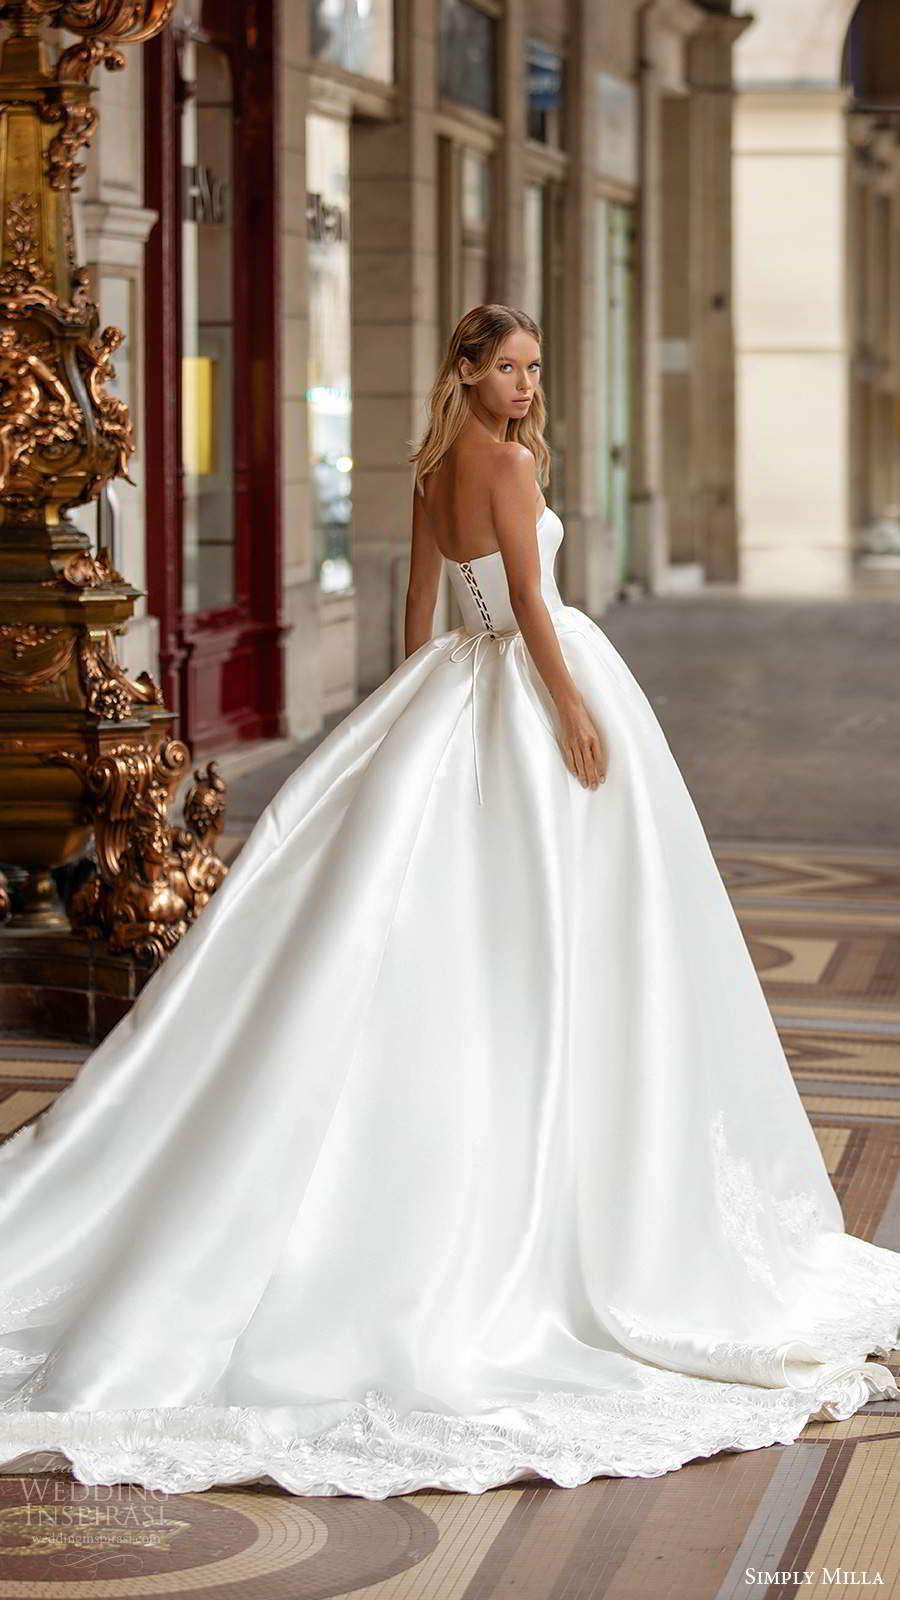 simply milla nova 2020 bridal strapless semi sweetheart clean minimal a line ball gown wedding dress chapel train (2) bv